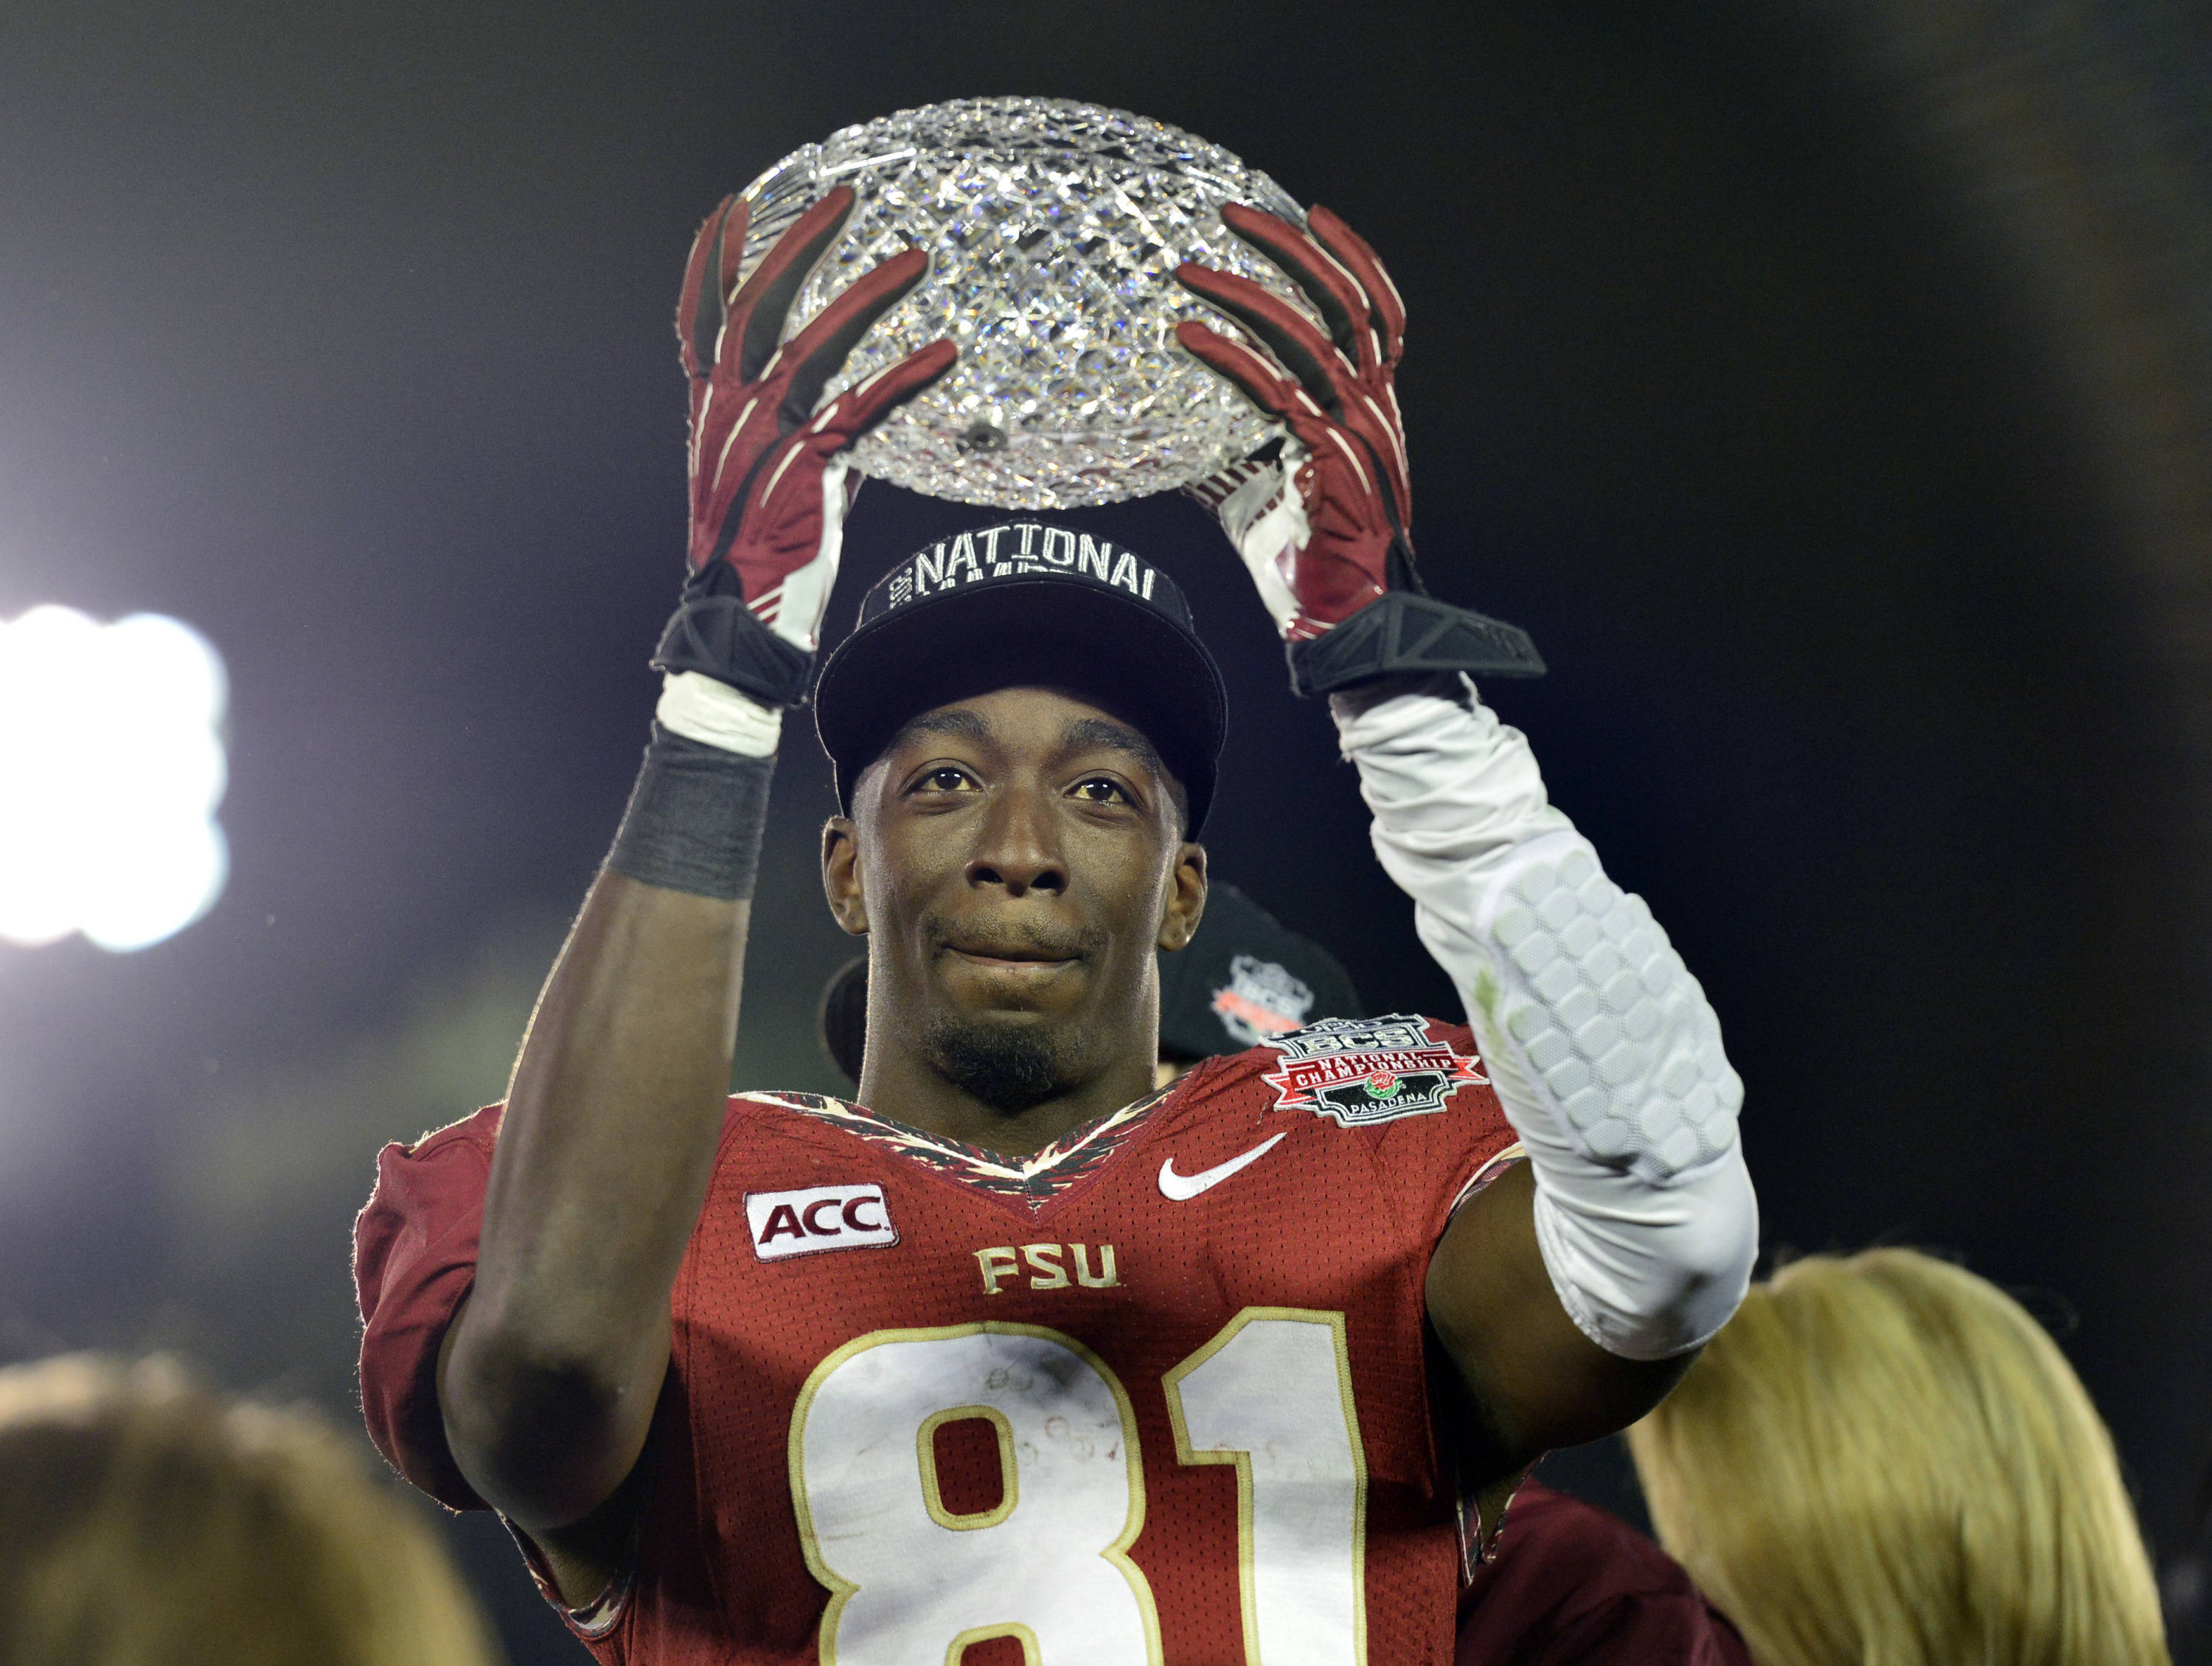 Jan 6, 2014; Pasadena, CA, USA; Florida State Seminoles wide receiver Kenny Shaw (81) celebrates with the Coaches Trophy after winning the 2014 BCS National Championship game against Auburn Tigers 34-31 at the Rose Bowl.  Mandatory Credit: Richard Mackson-USA TODAY Sports